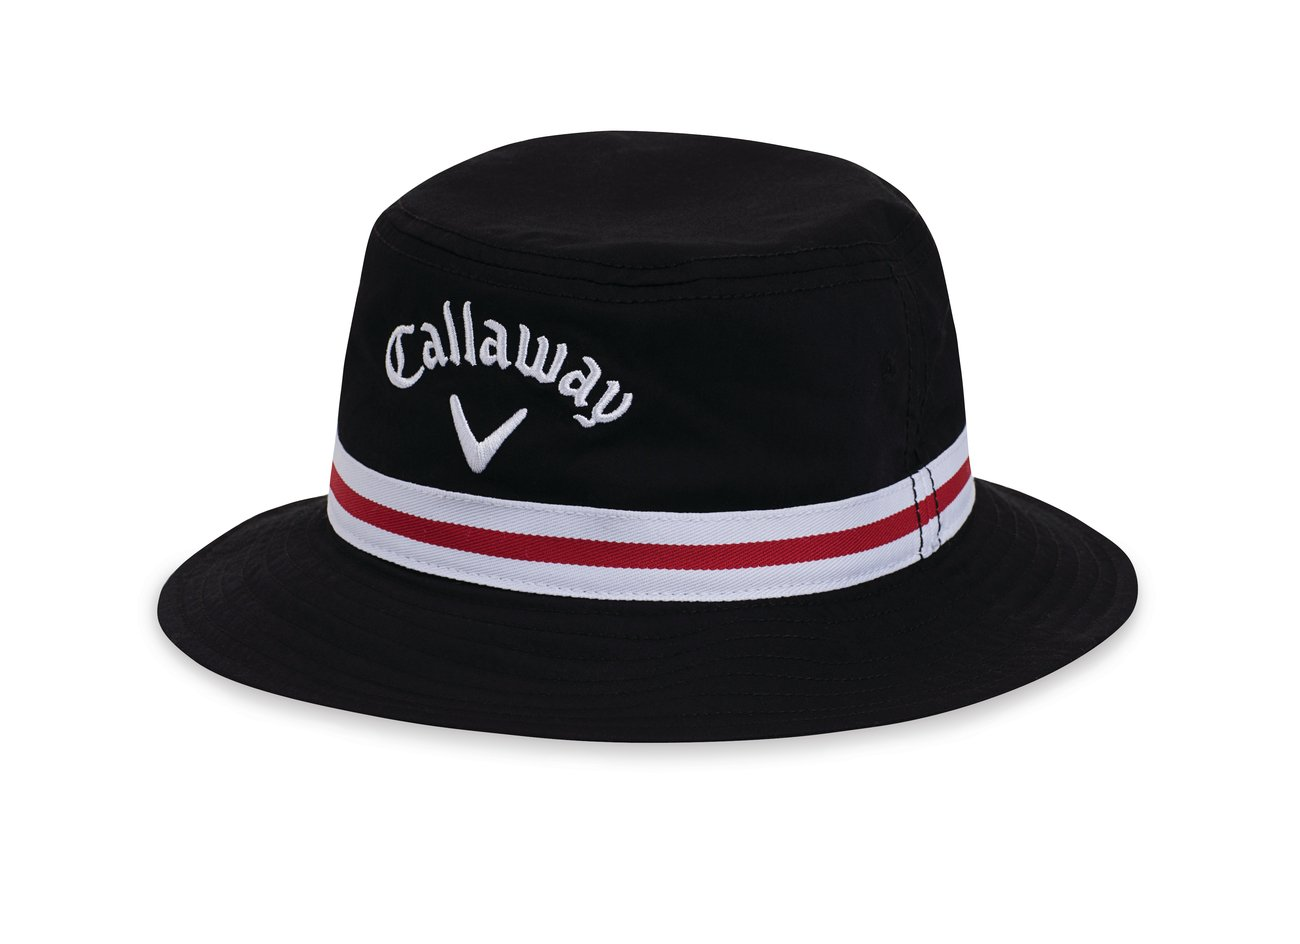 Callaway 2016 Bucket Hat  Amazon.co.uk  Sports   Outdoors 271979558d6